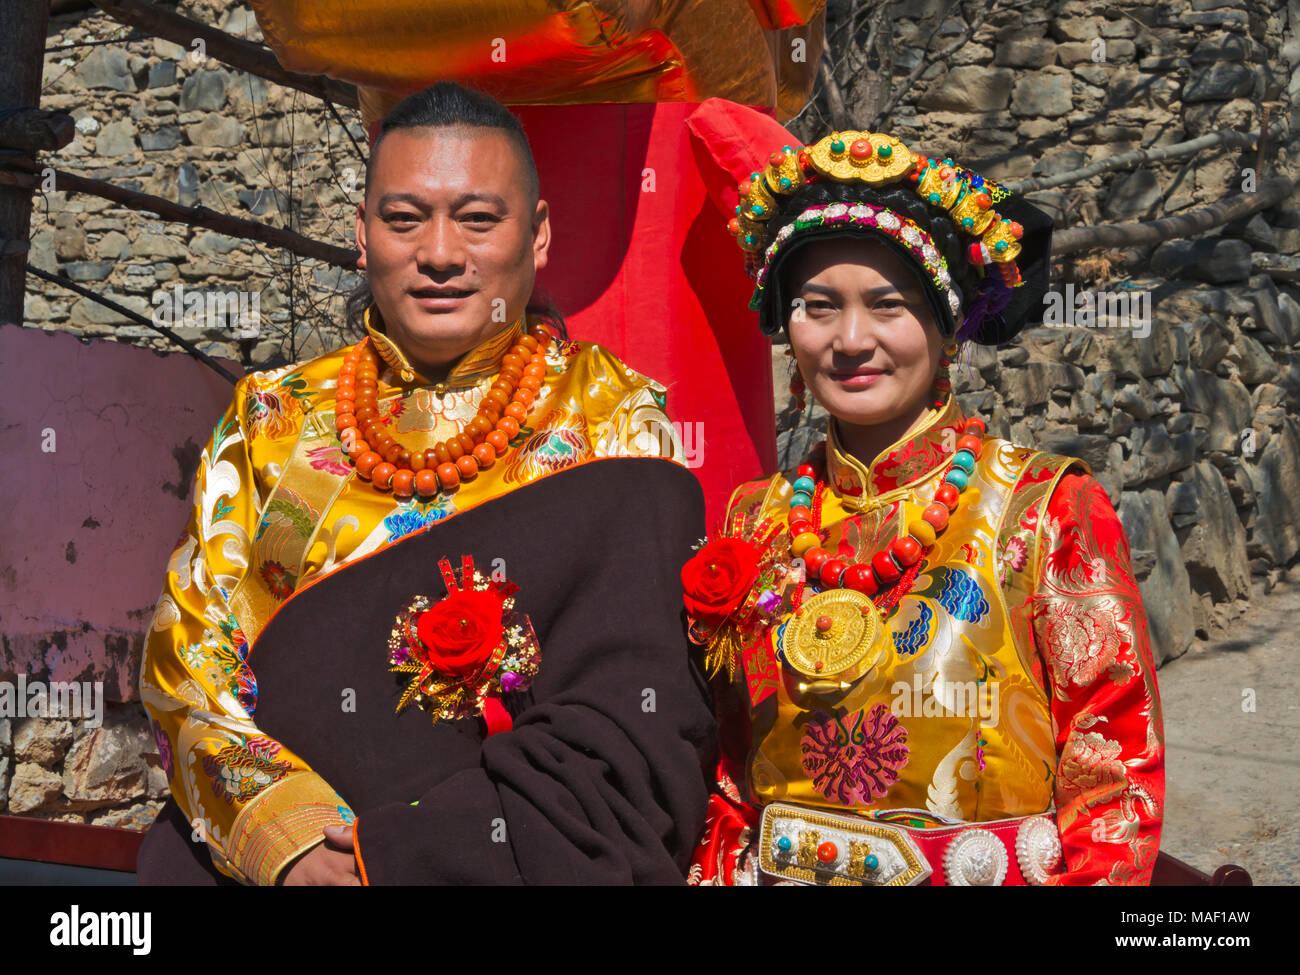 A newly wed couple in traditional Tibetan clothing, Jinchuan County, Sichuan Province, China - Stock Image